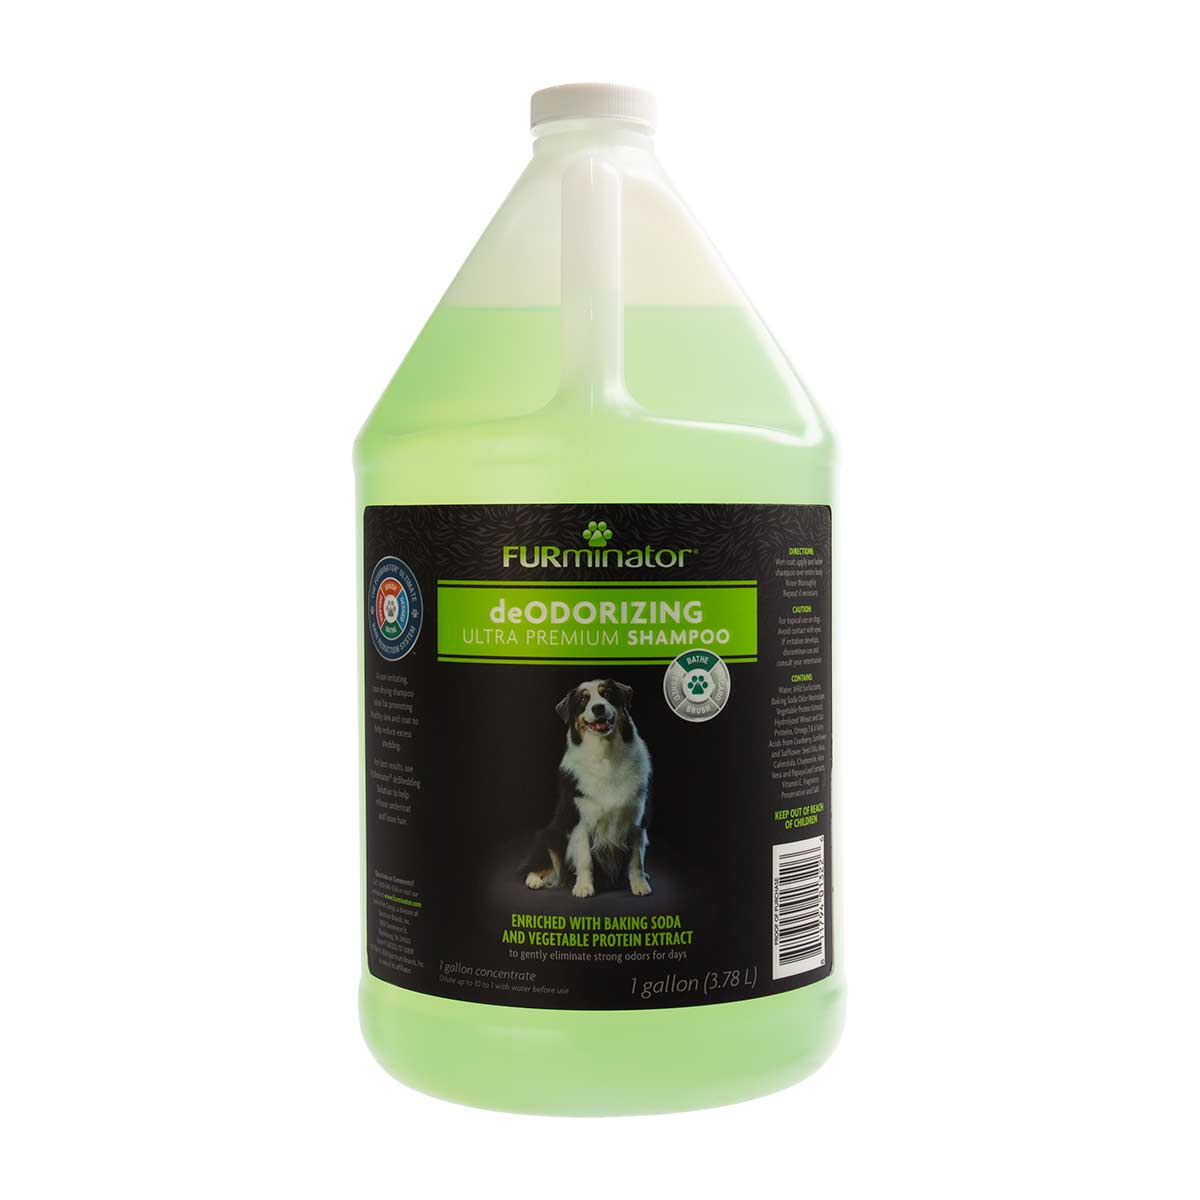 Furminator Deodorizing Ultra Premium Dogs Shampoo - Gallon Concentrated 10 to 1